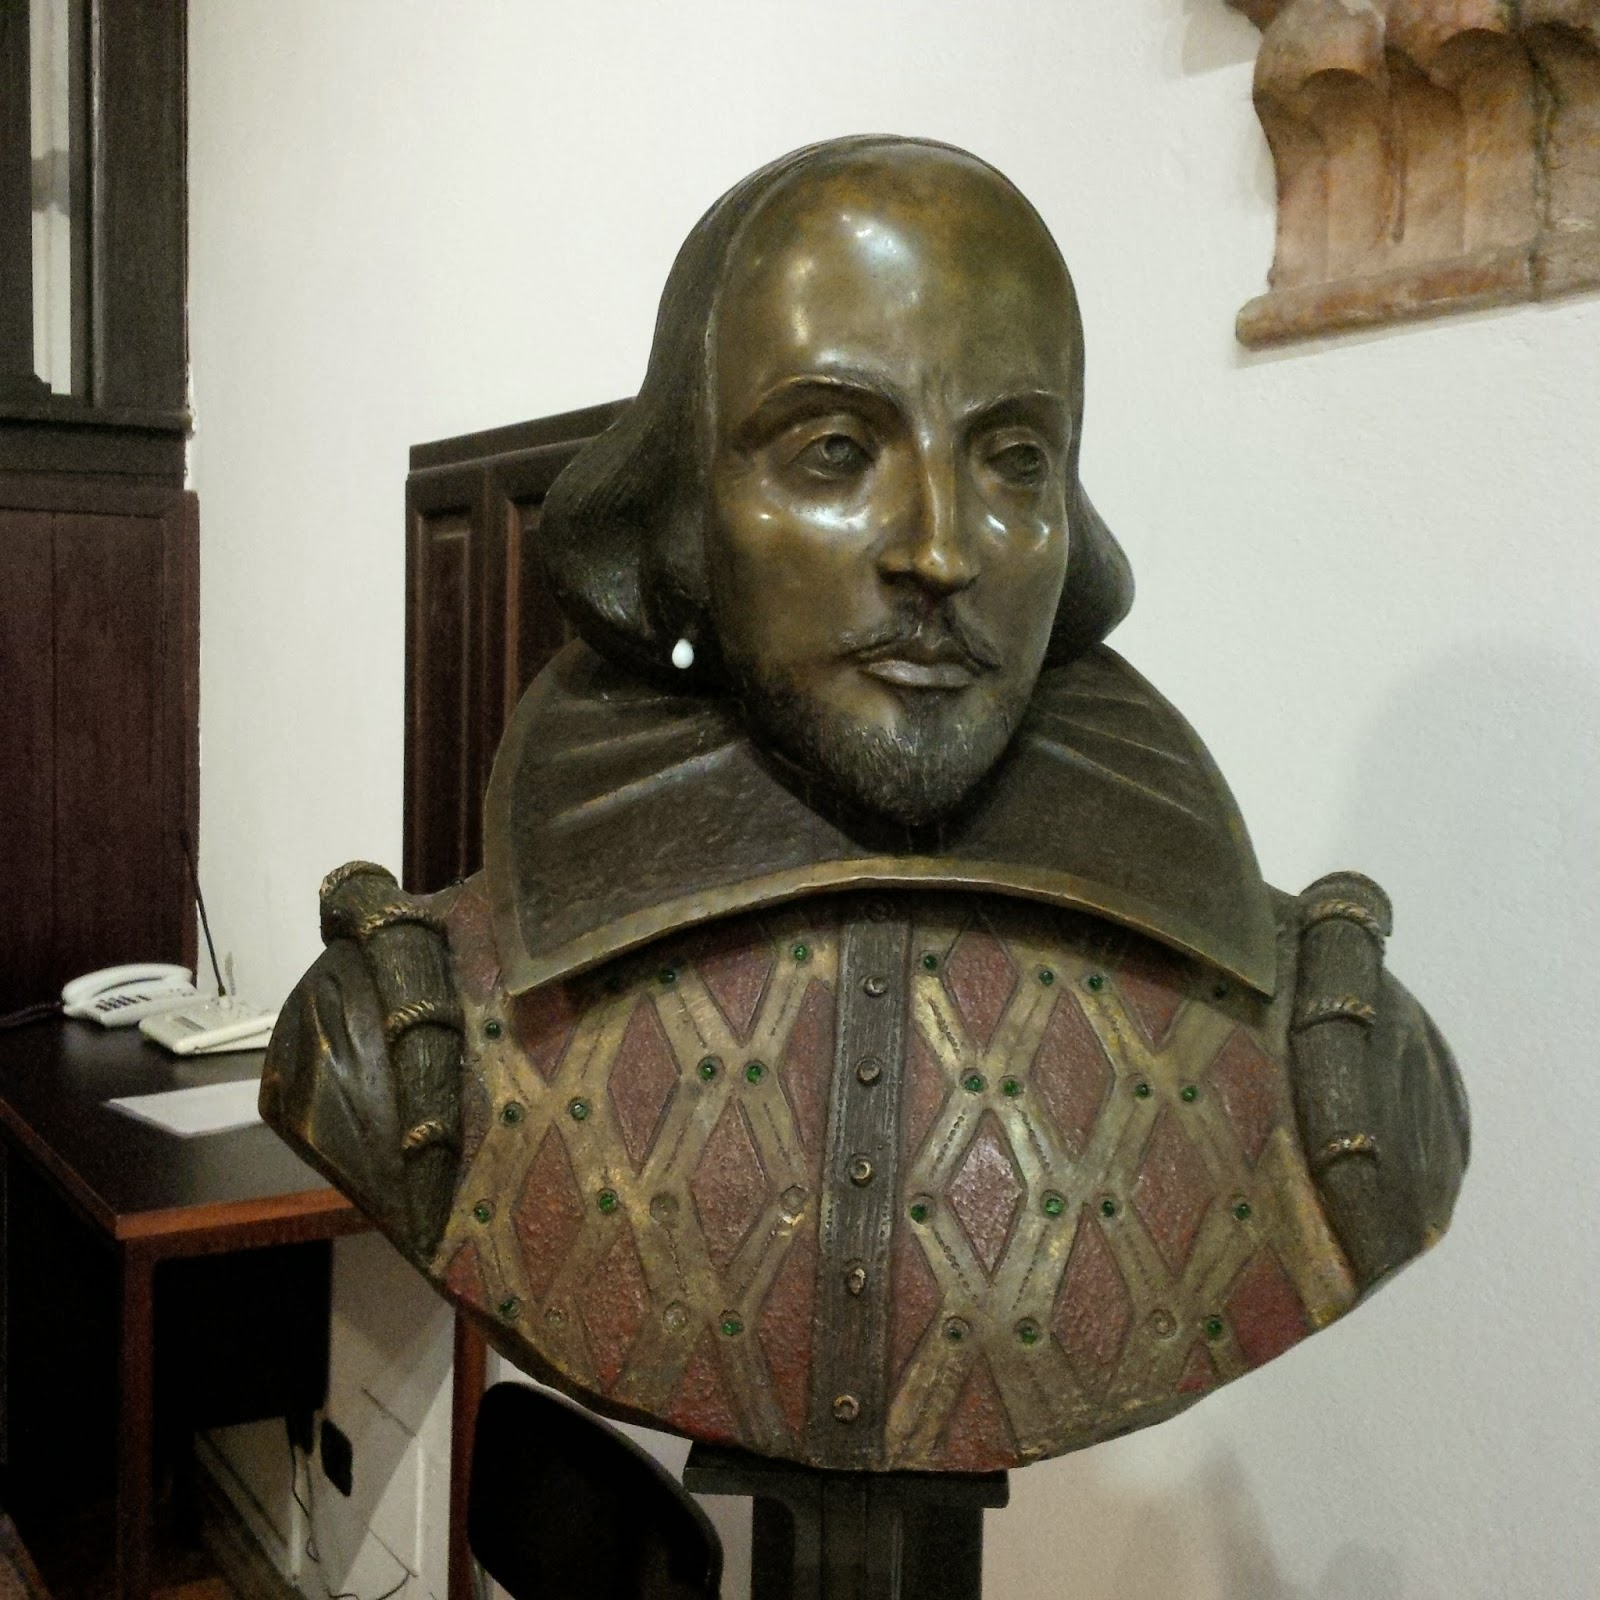 Shakespeare's bust in Juliet's House in Verona